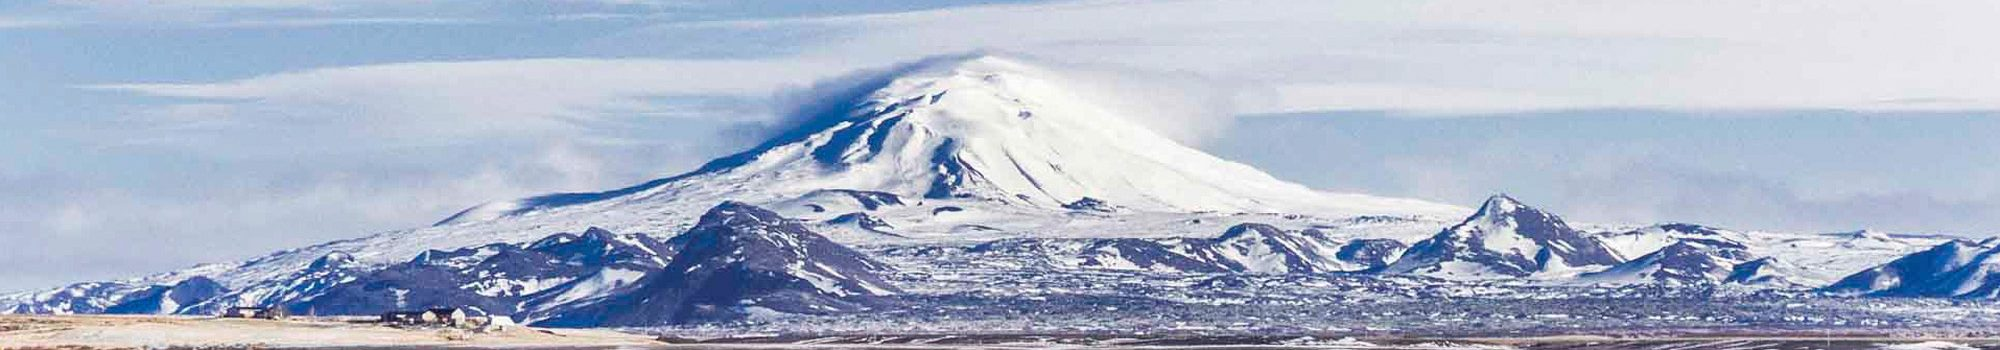 snow view of hekla volcano